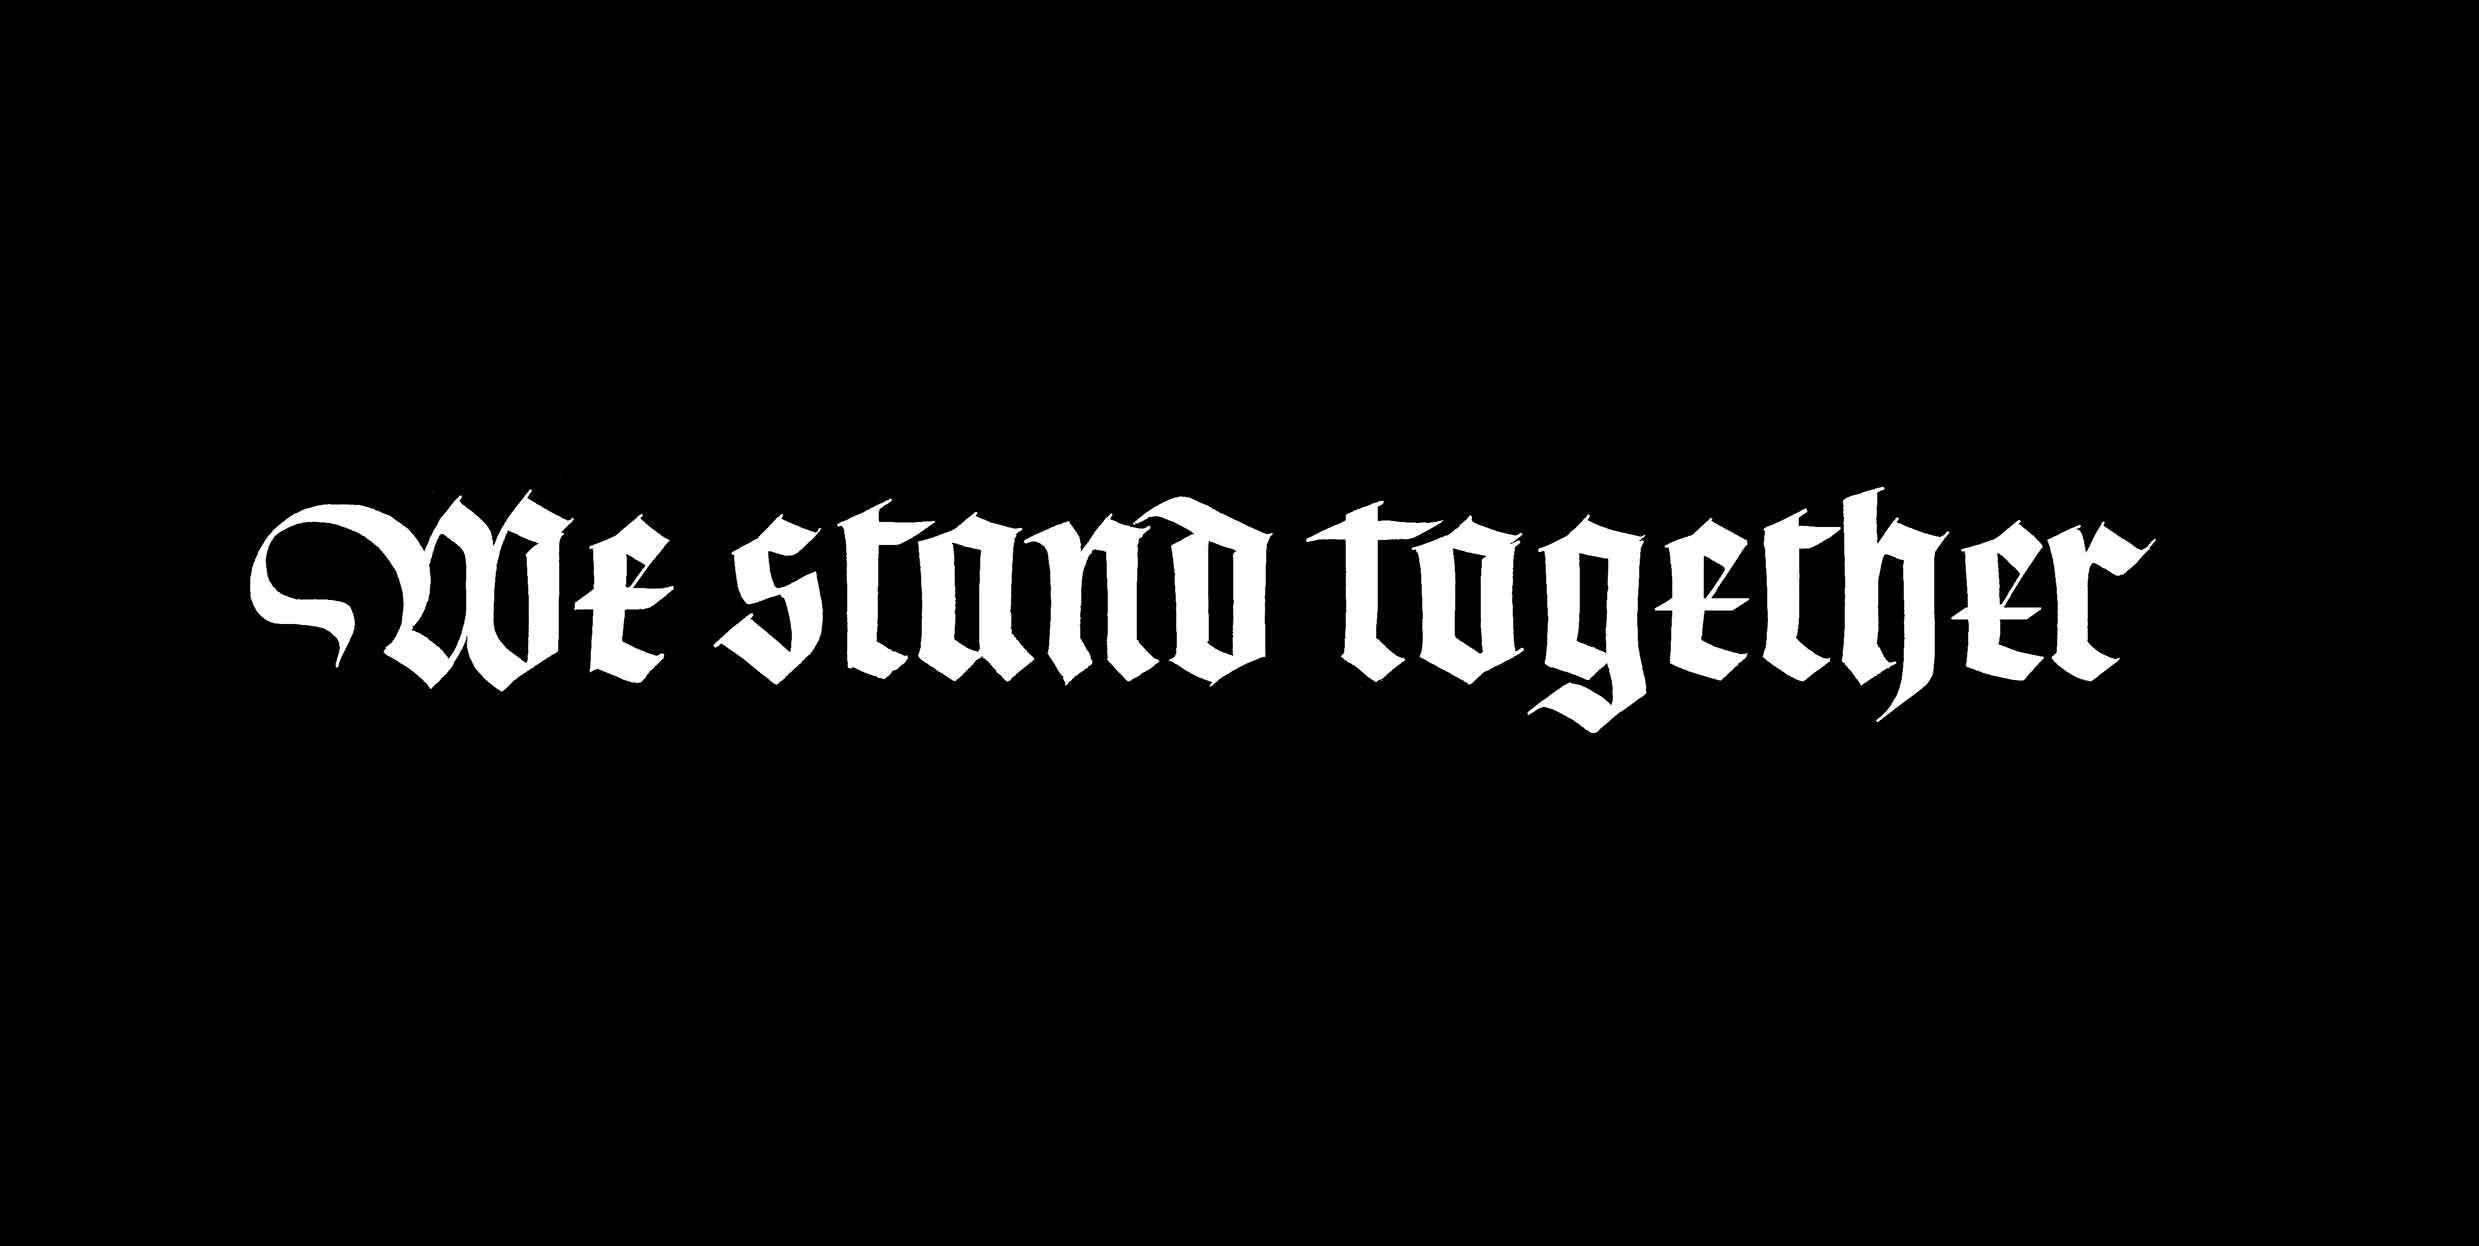 Image result for we stand